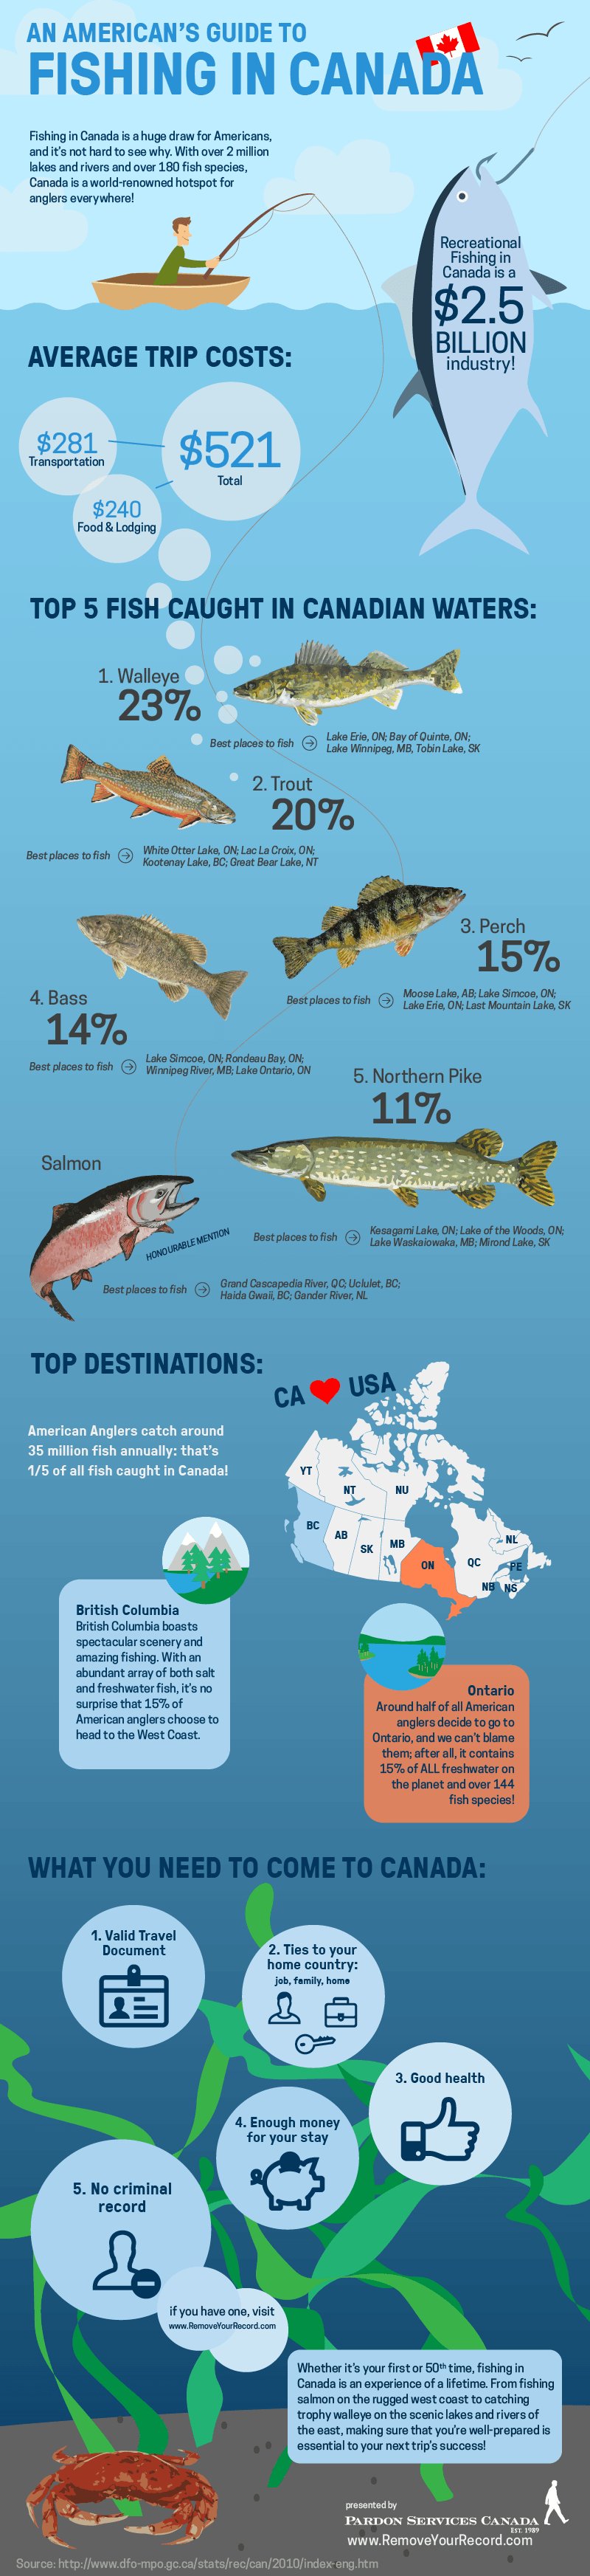 An american 39 s guide to fishing in canada 2015 infographic for Canadian fishing license bc